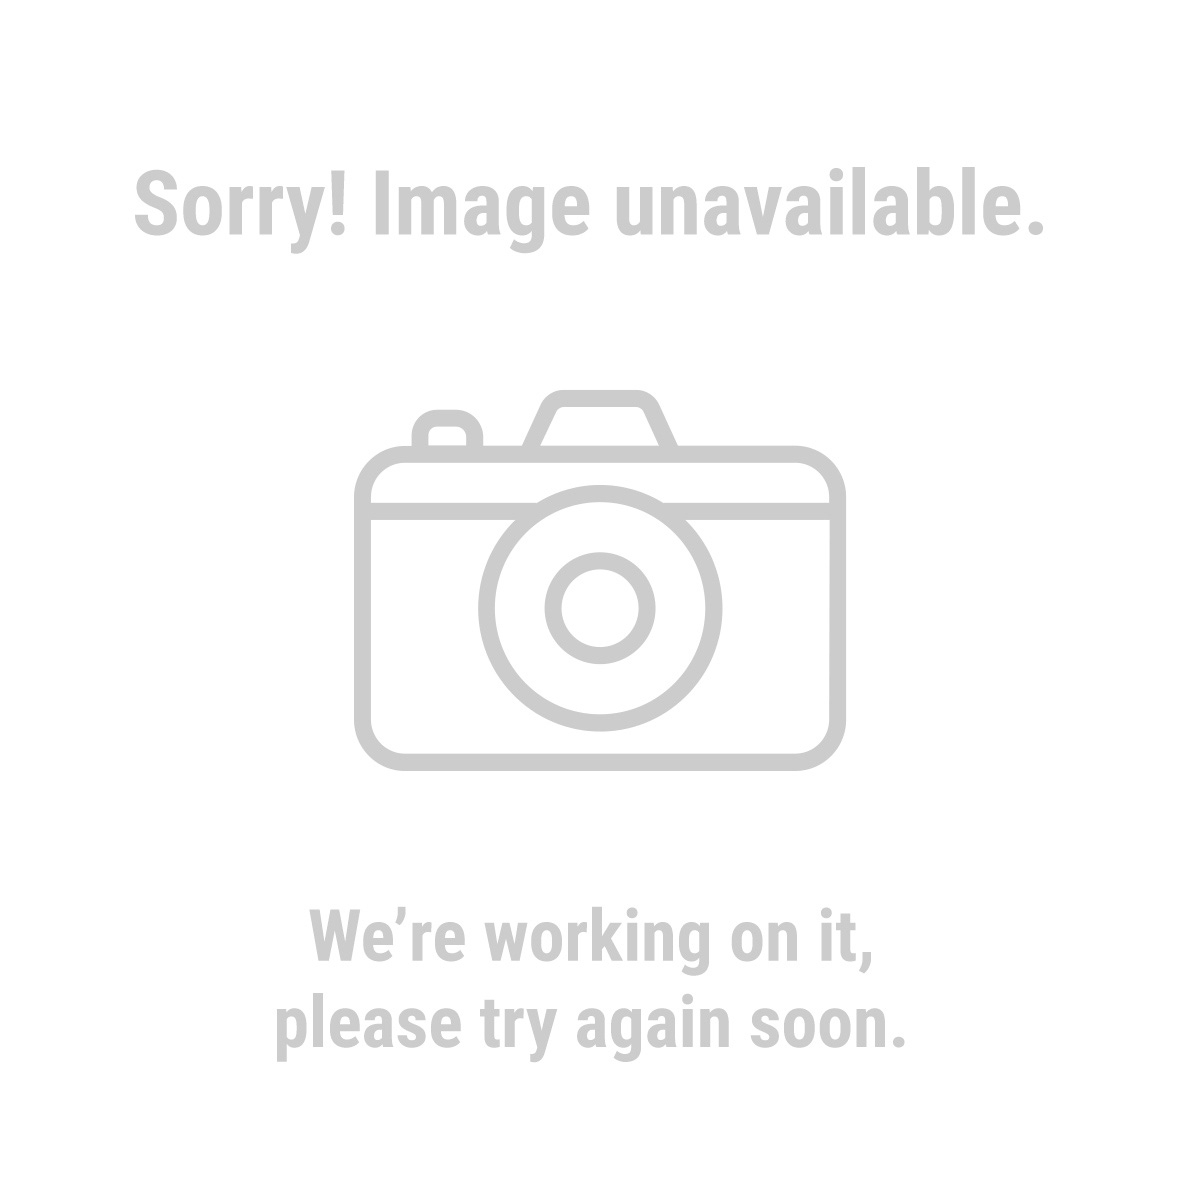 Pittsburgh 69355 7 Piece Pliers Set